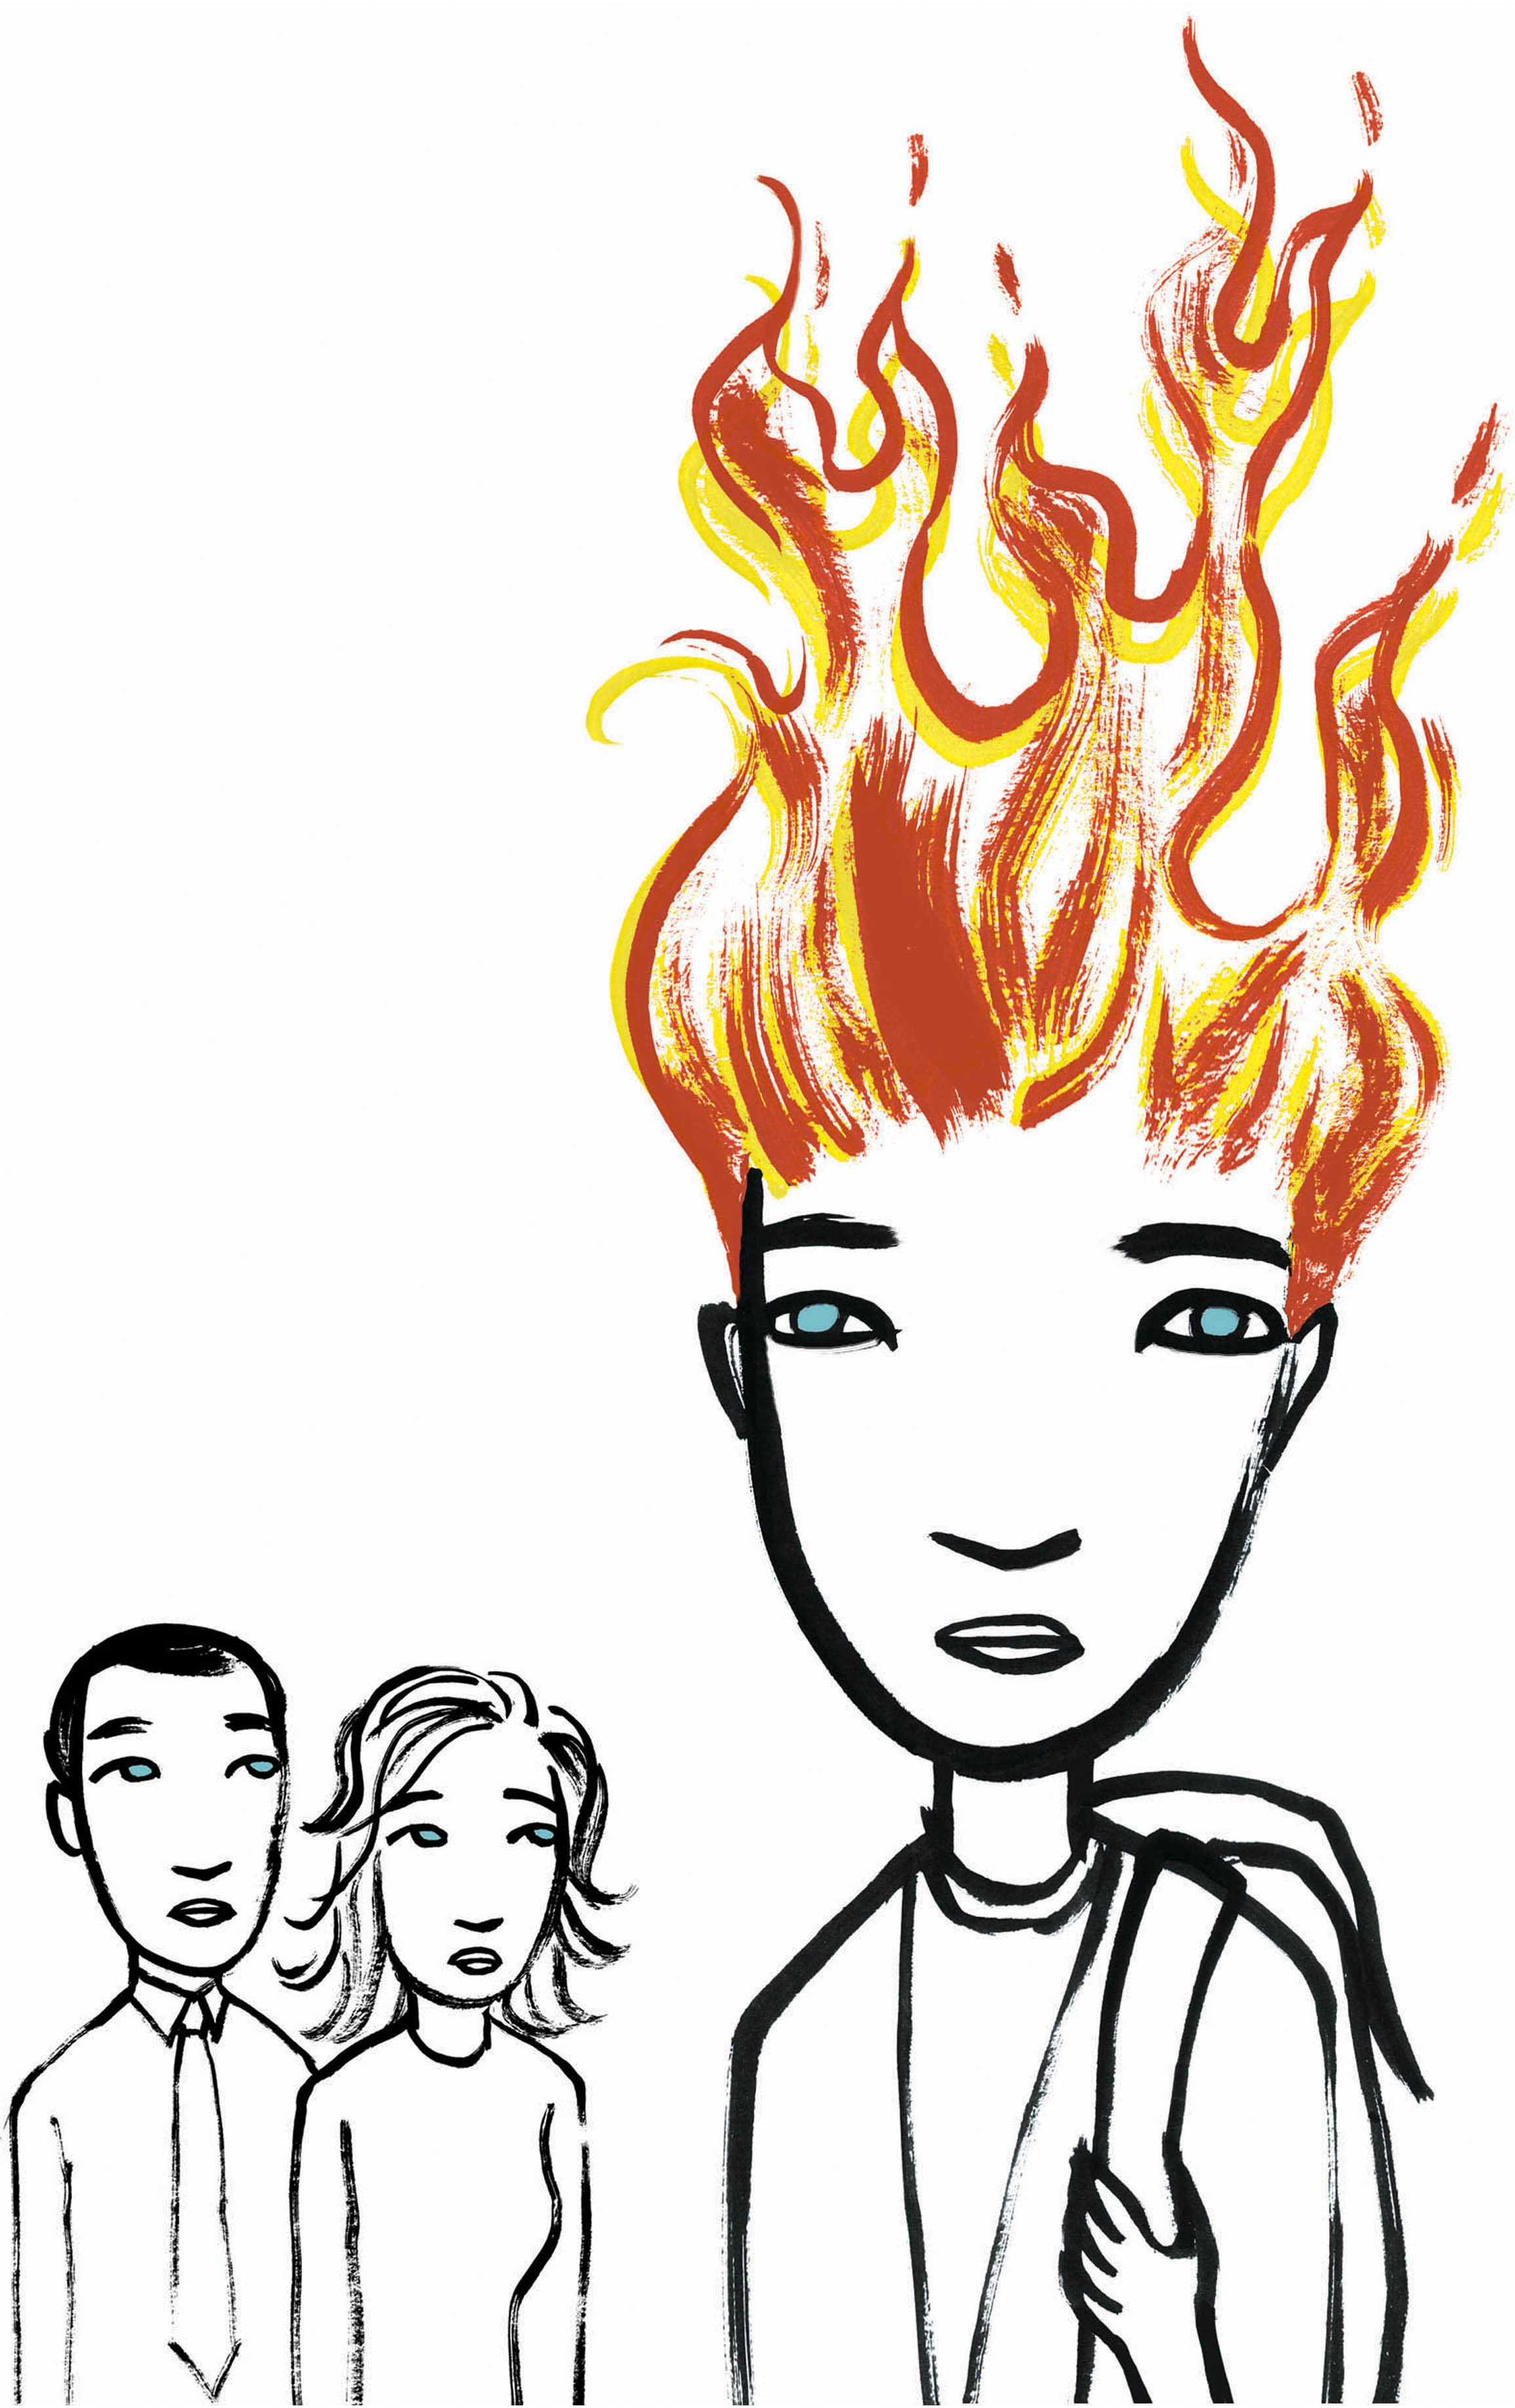 300 dpi 4 col x 12.25 in / 196x311 mm / 667x1058 pixels Michelle Kumata color illustration of concerned parents looking on at a child's flaming hair. The Seattle Times 2006   KEYWORDS: teen brain flame flaming firey fire hair color dyeing dye smoking smoke development redhead teenage adolescent adolescence student learning education growth girl girls family puberty krtfeatures features krthealthmed krtnational national krtworld world counseling krtfamily family krthealth health krtkidhealth kid krtmentalhealth mental health therapy krt aspecto aspectos familia adolescente muchacha nina hija fuego cerebro educacion pelo roja illustration ilustracion grabado se contributor coddington kumata 2006 krt2006